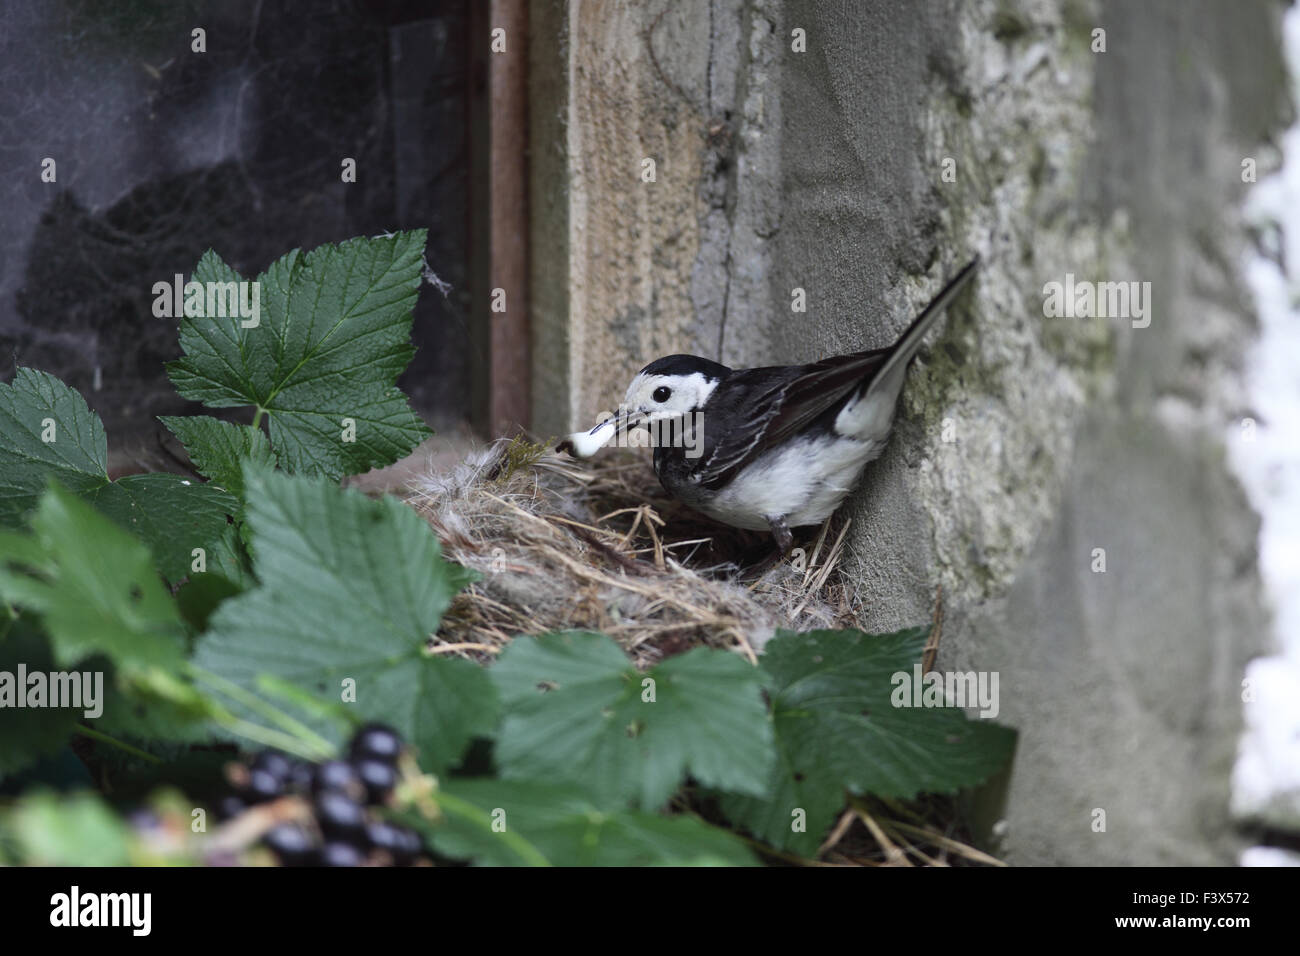 removing feacal sac from nest on barn windowsill carmarthenshre July 2015 - Stock Image